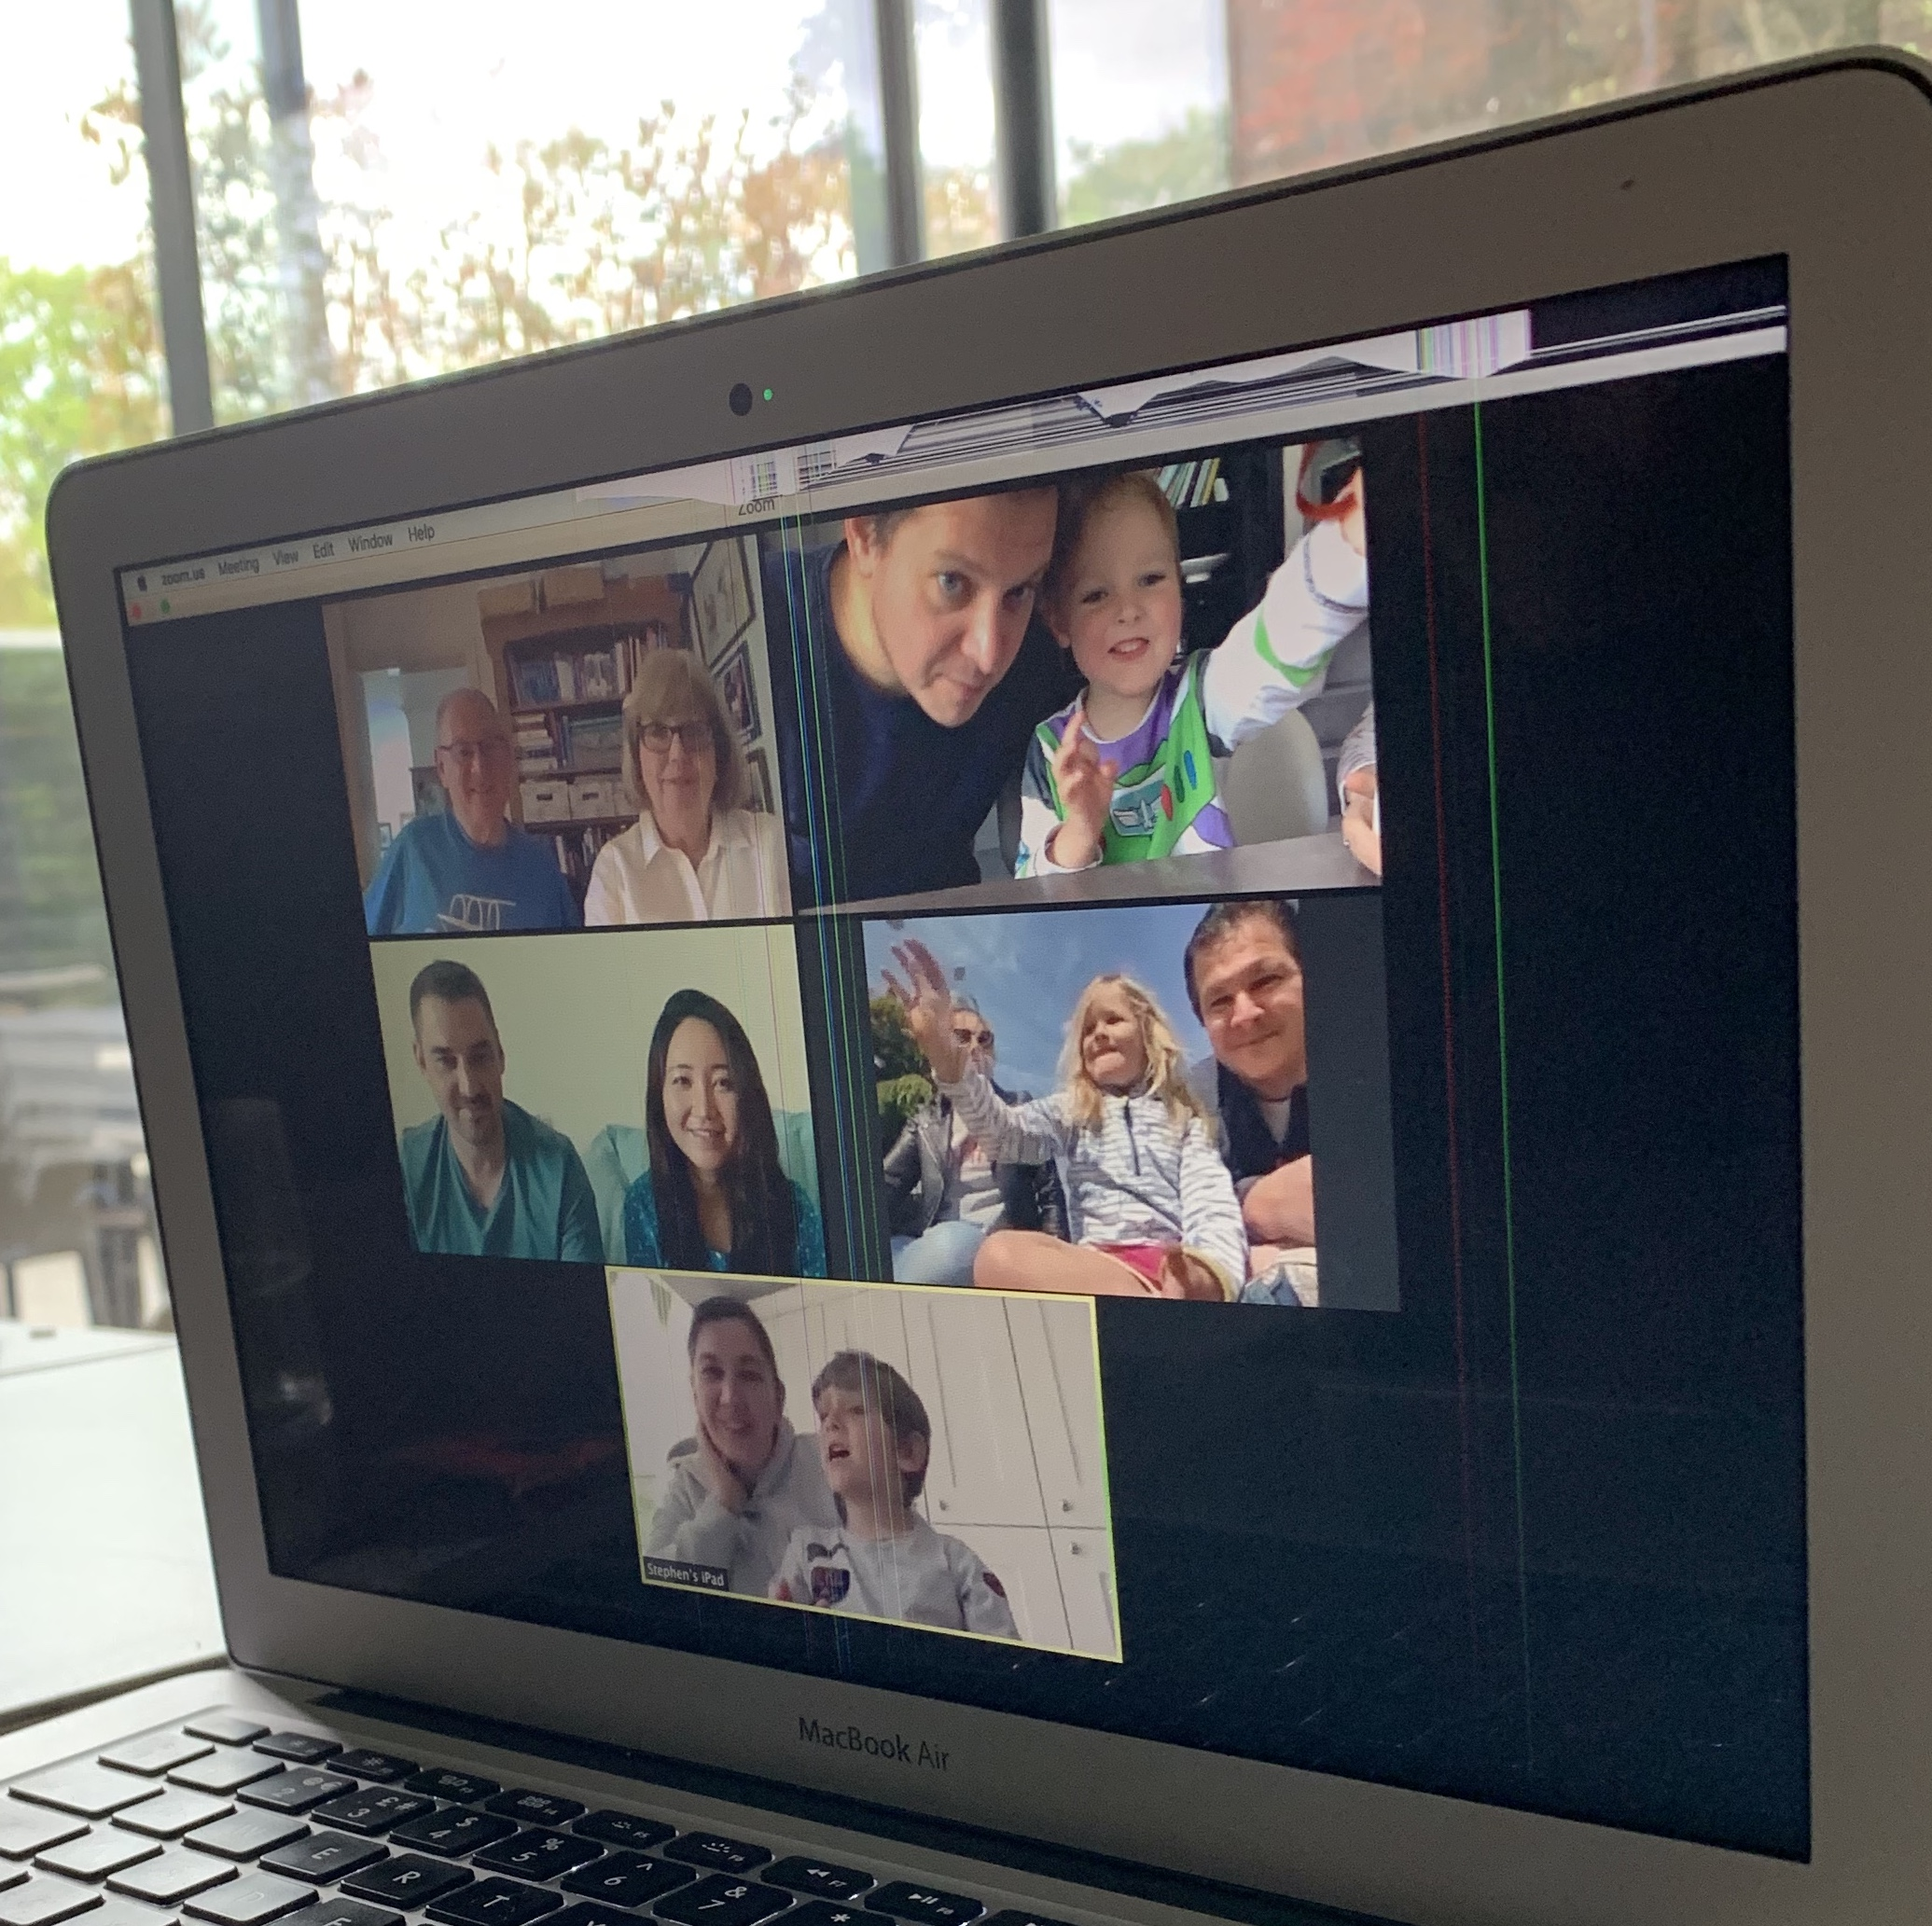 Laptop computer screen showing a family having a zoom call